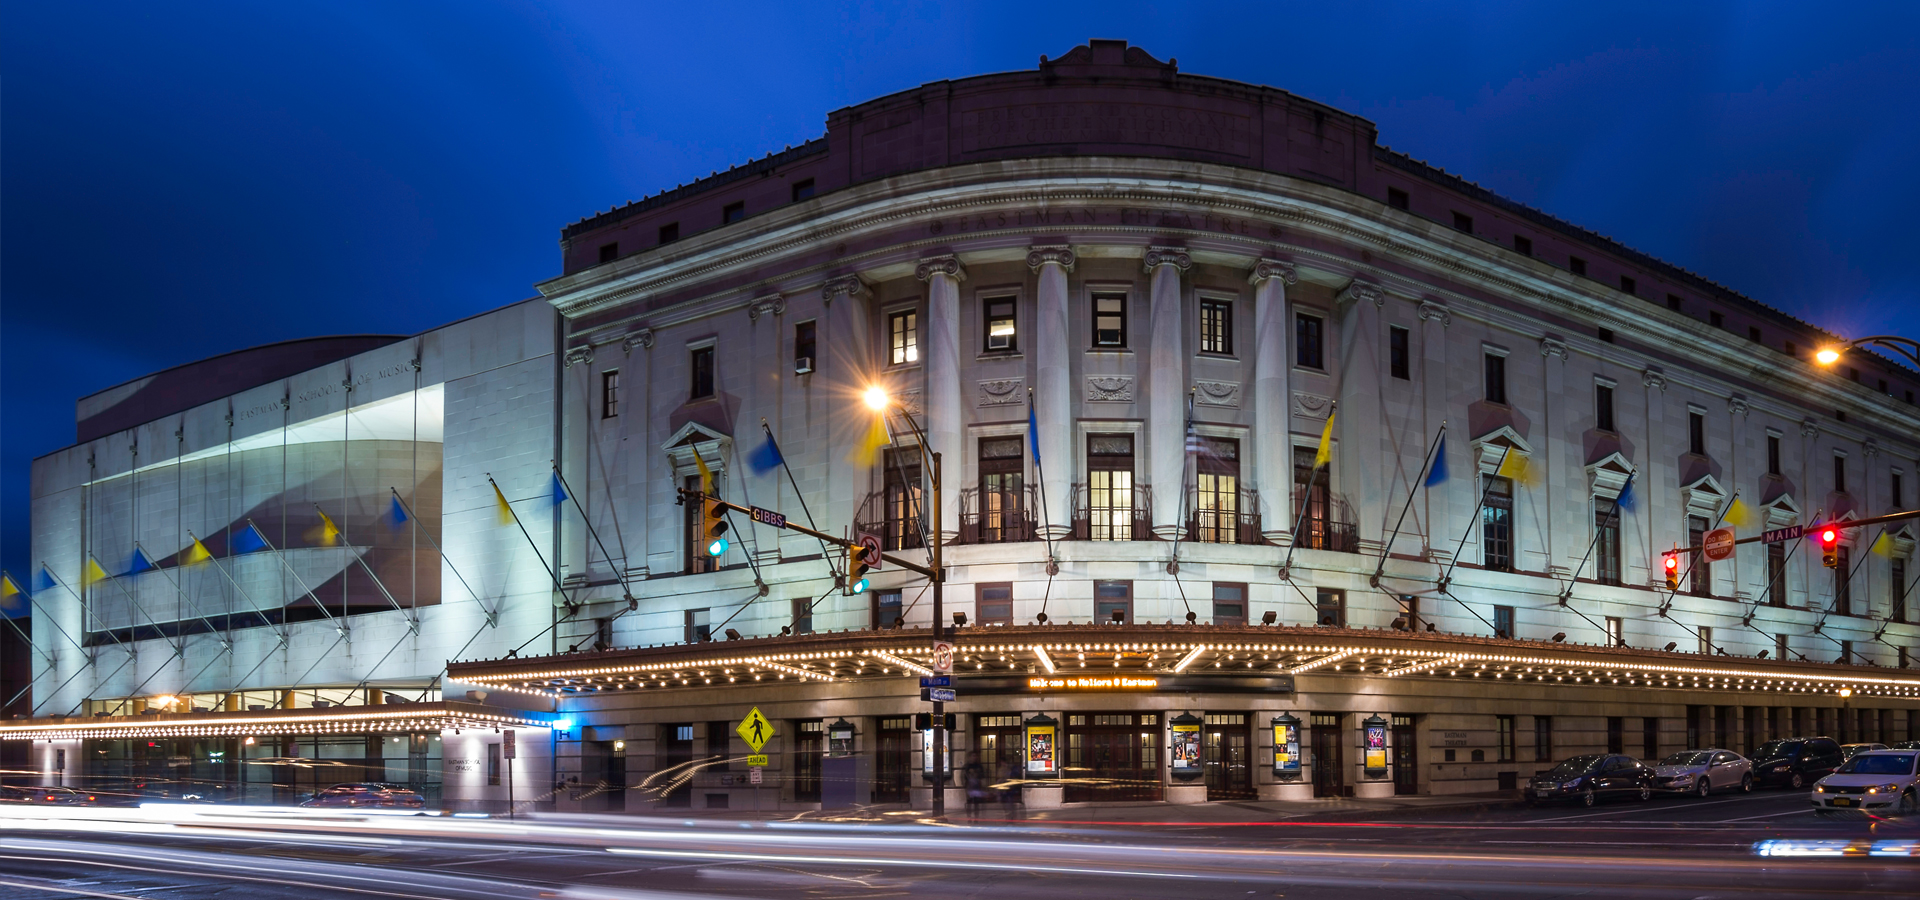 Eastman Theater at night